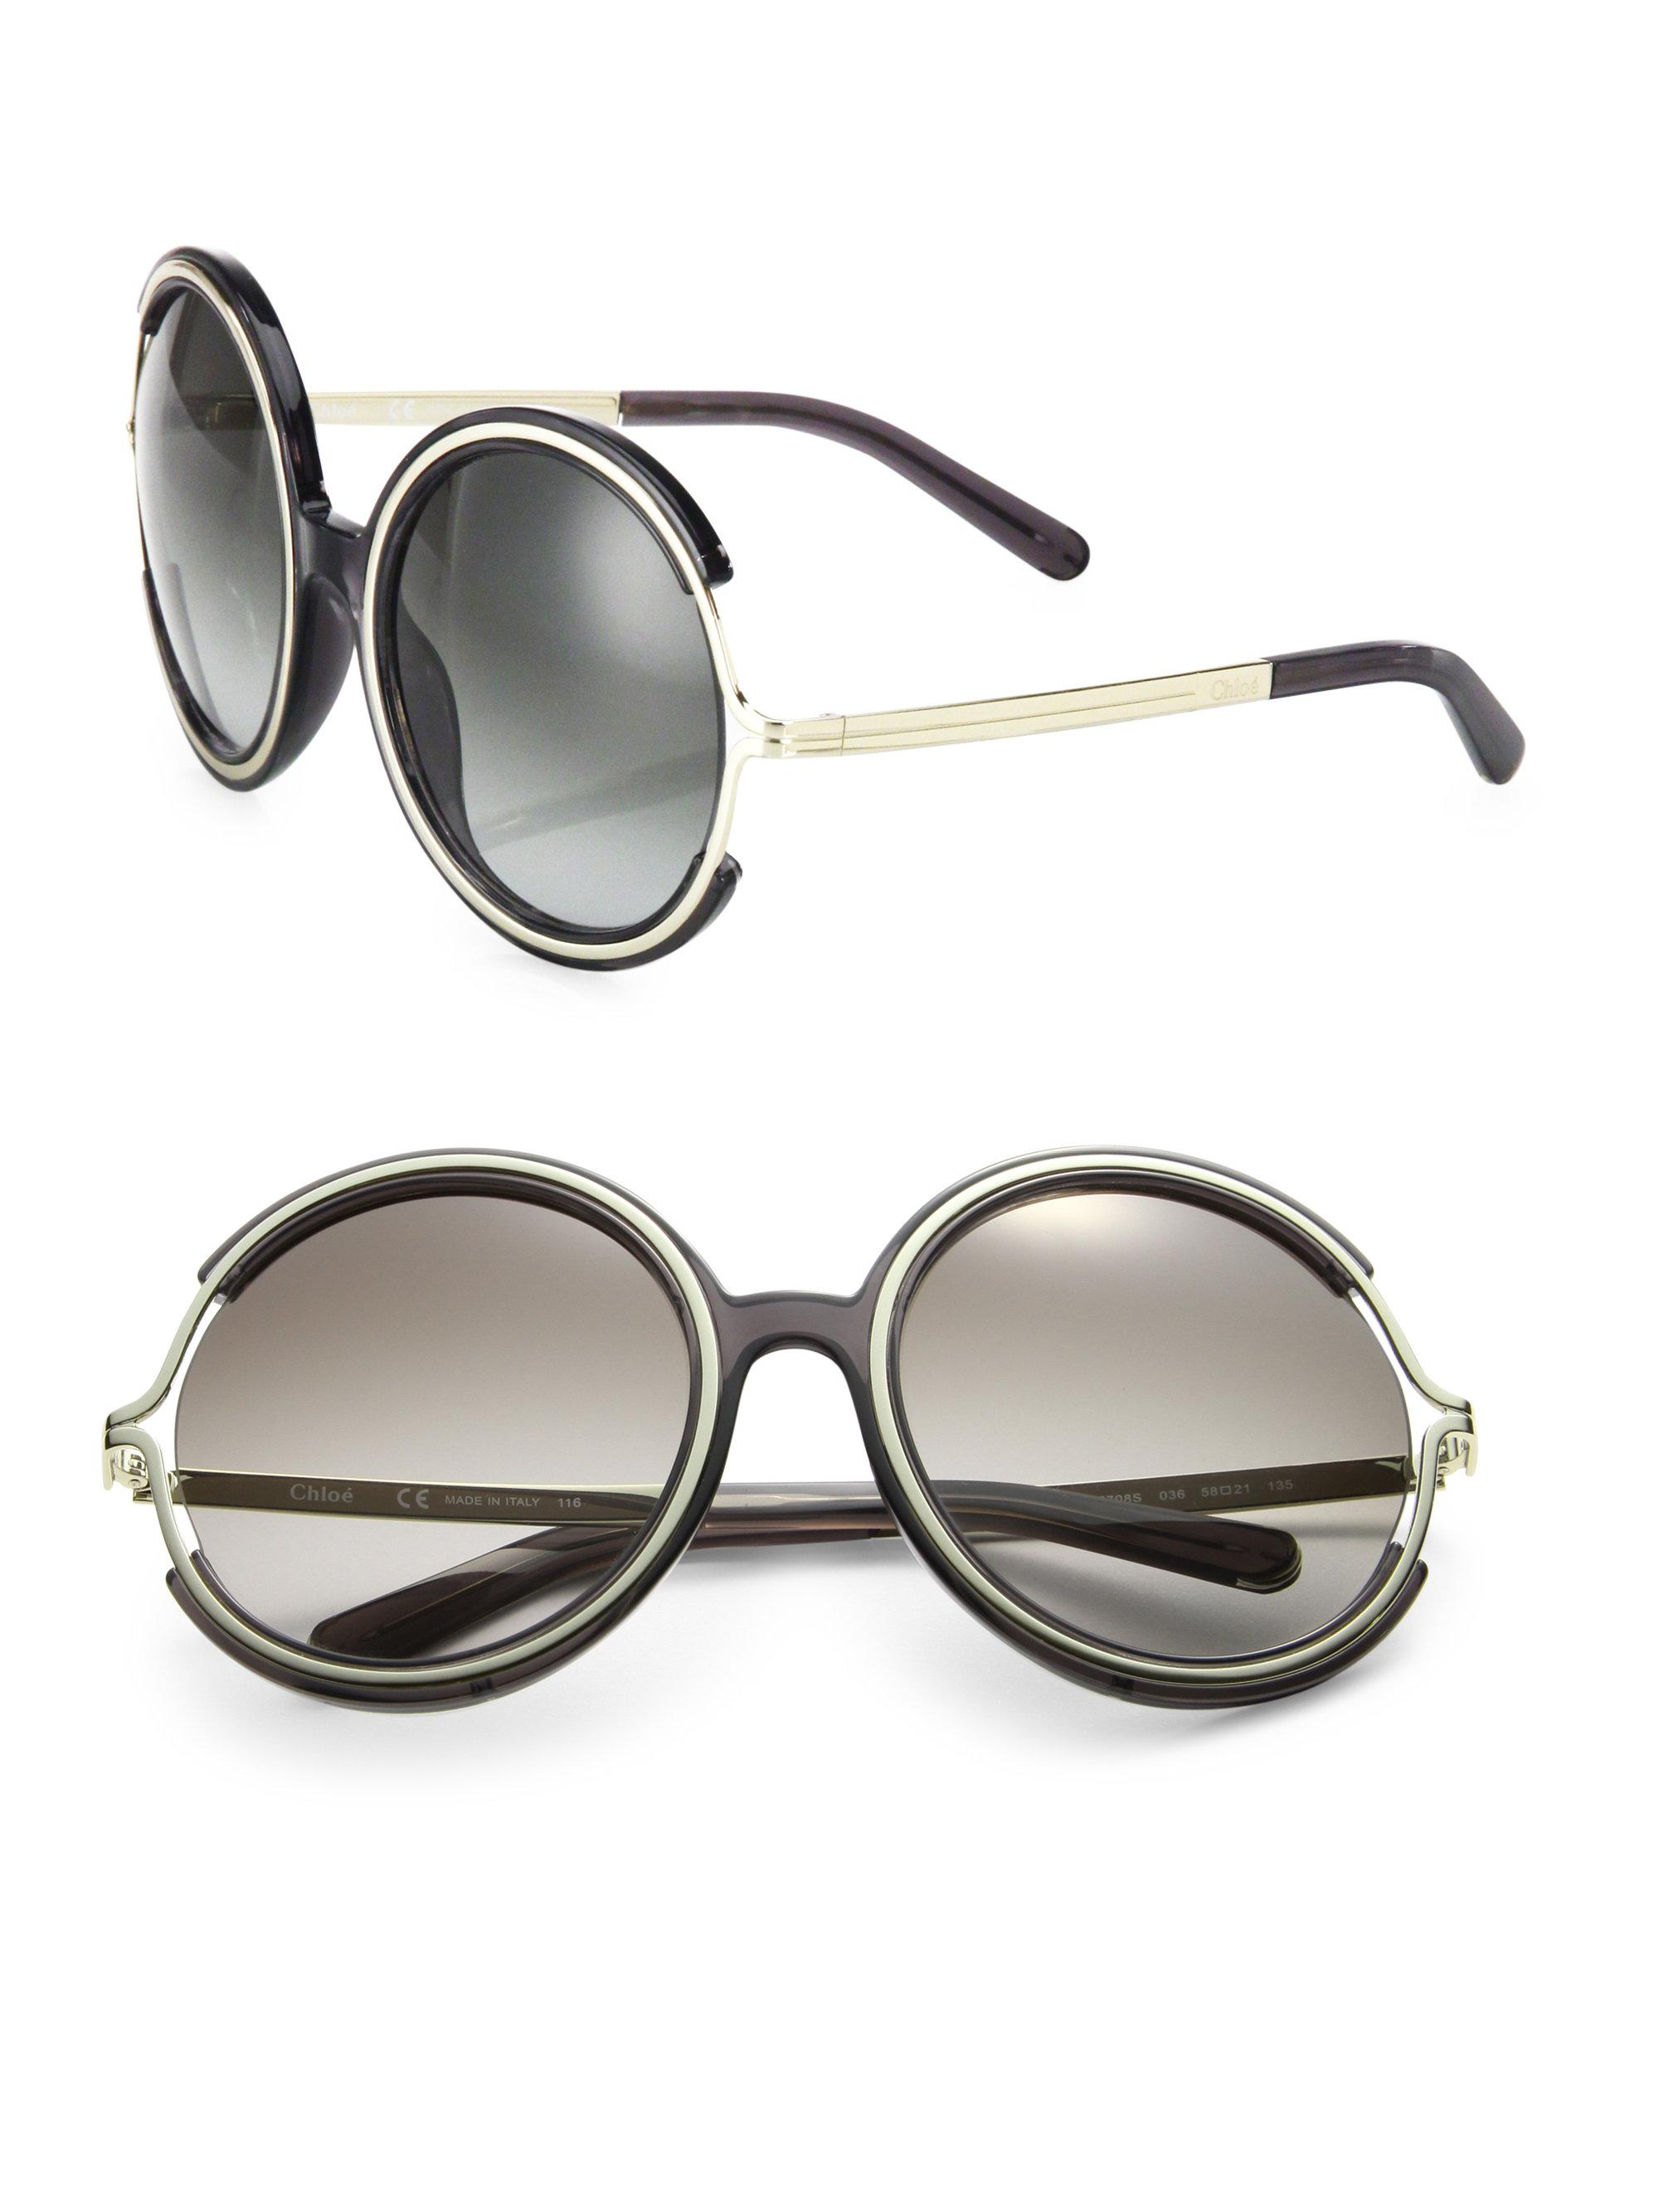 d6d0a9ba067 Chloé Jayme 58mm Round Sunglasses in Gray - Lyst